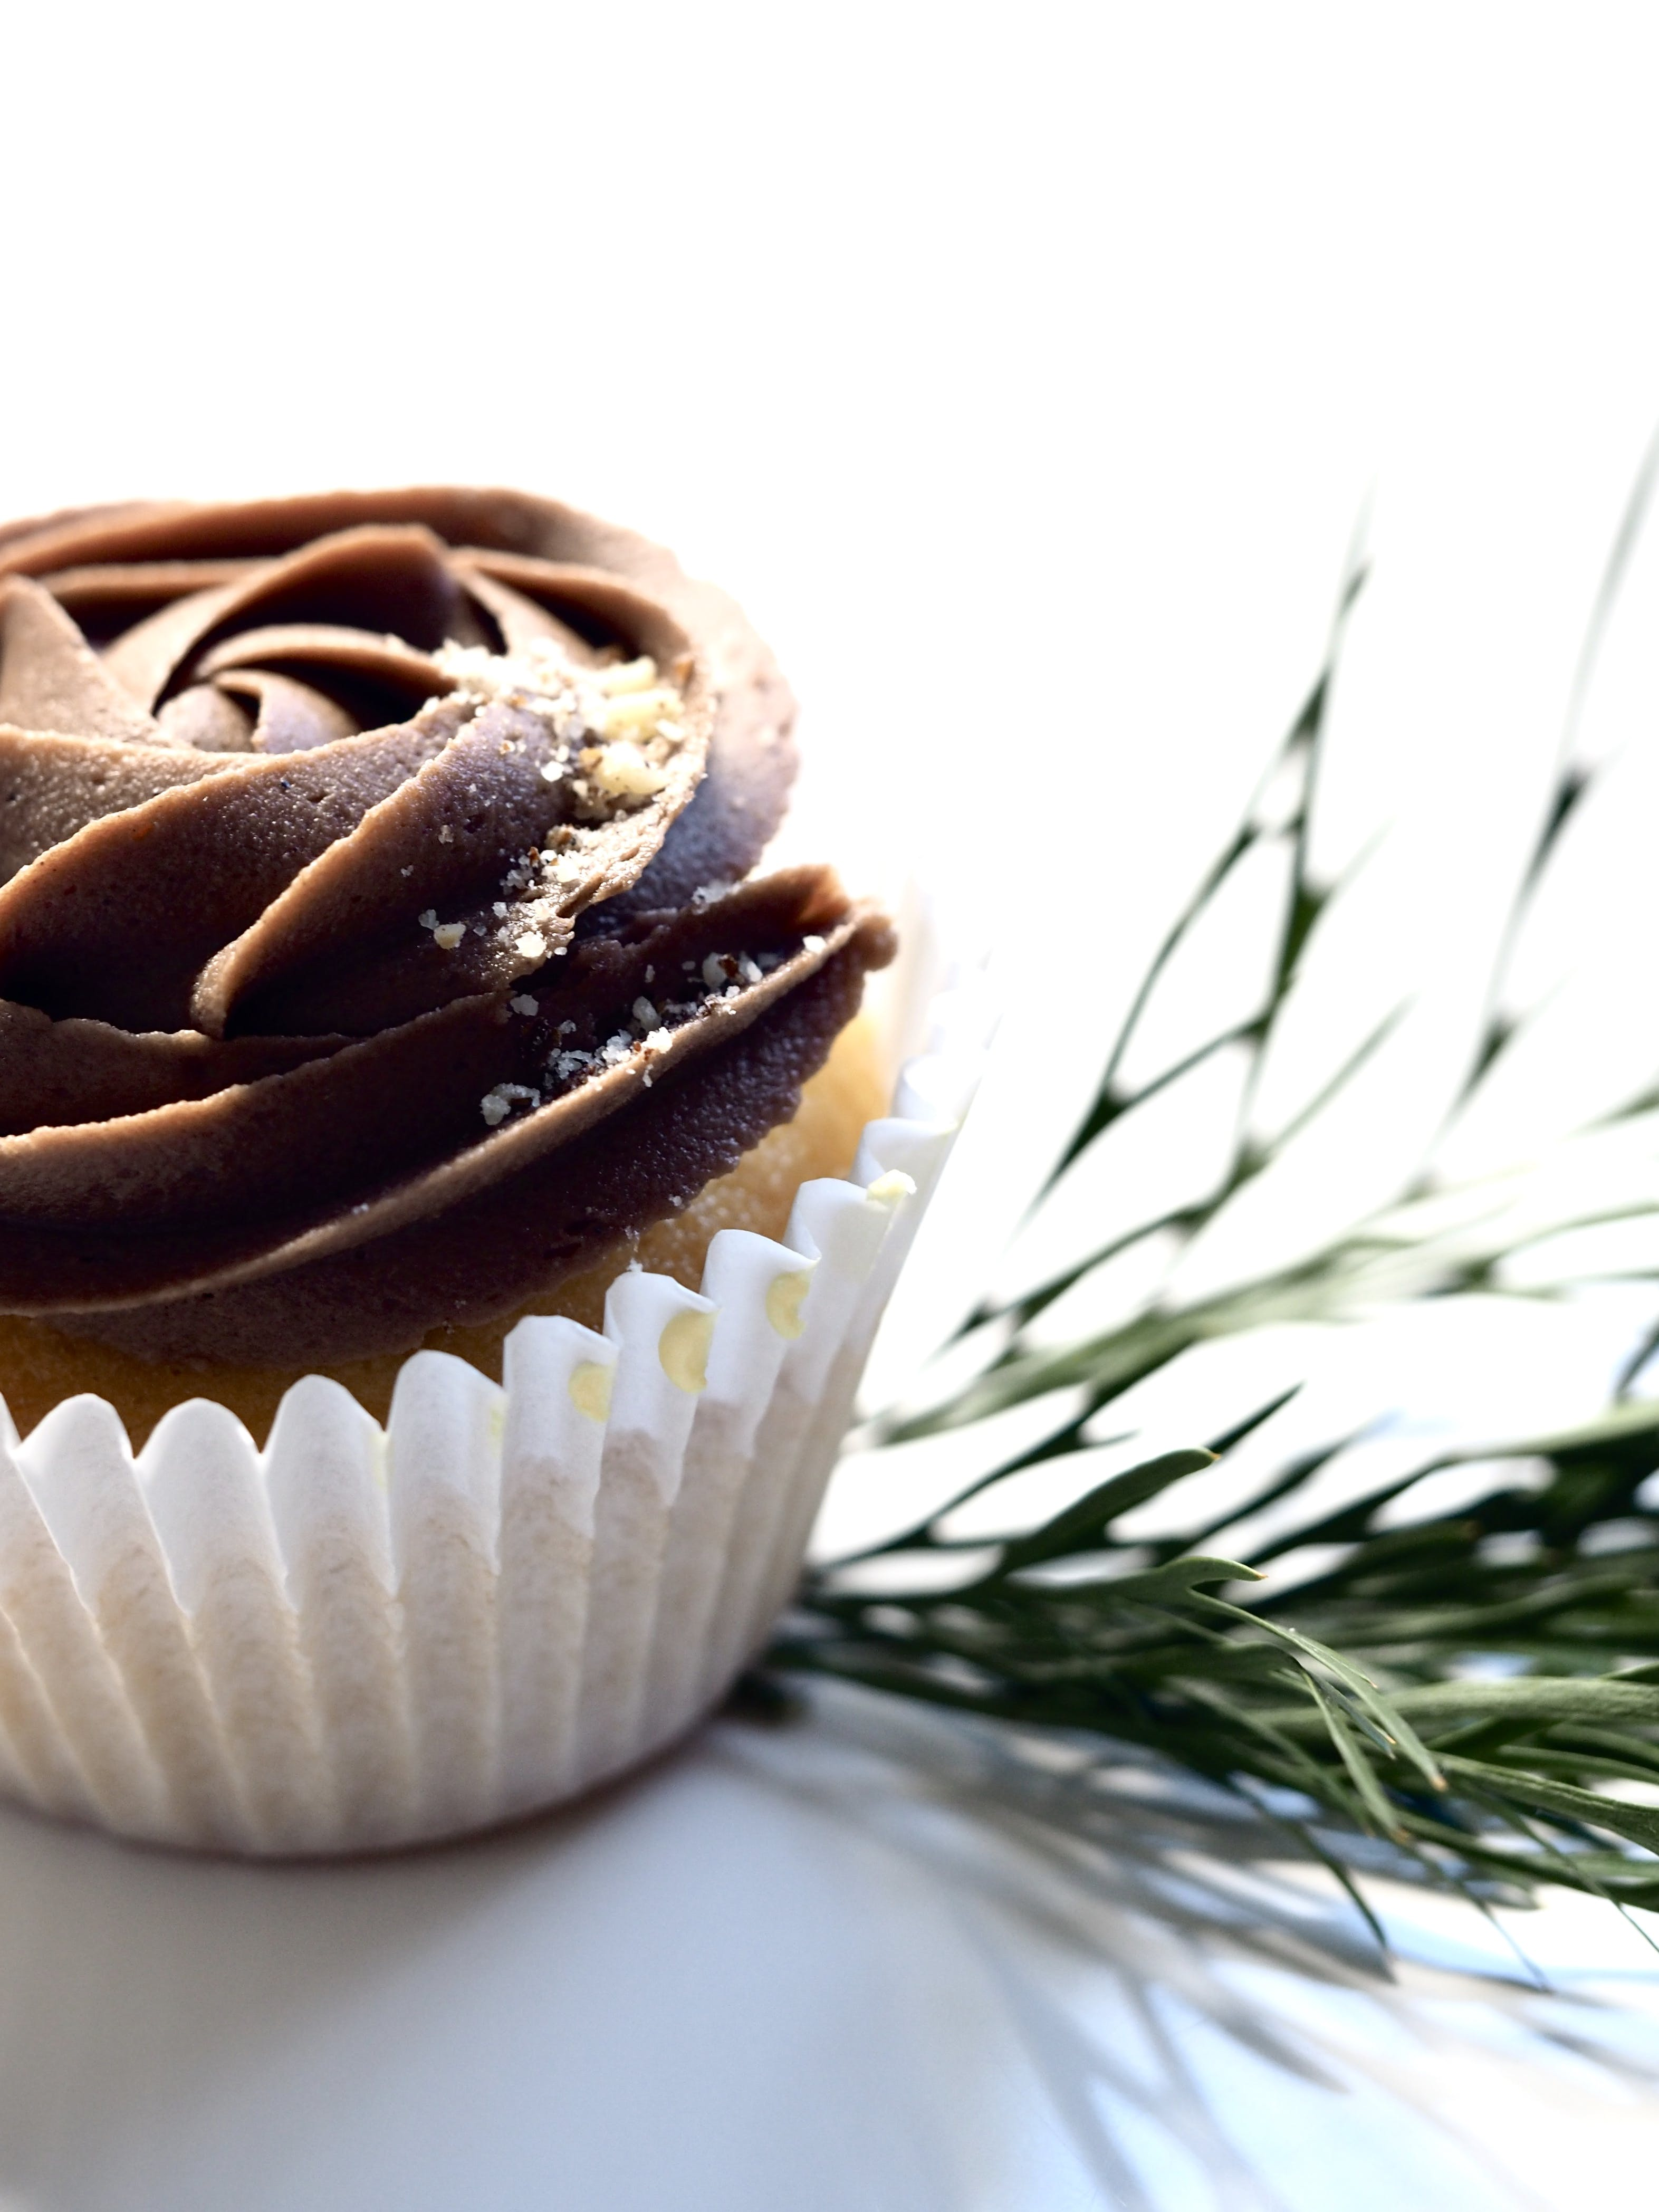 Cupcake With Topping